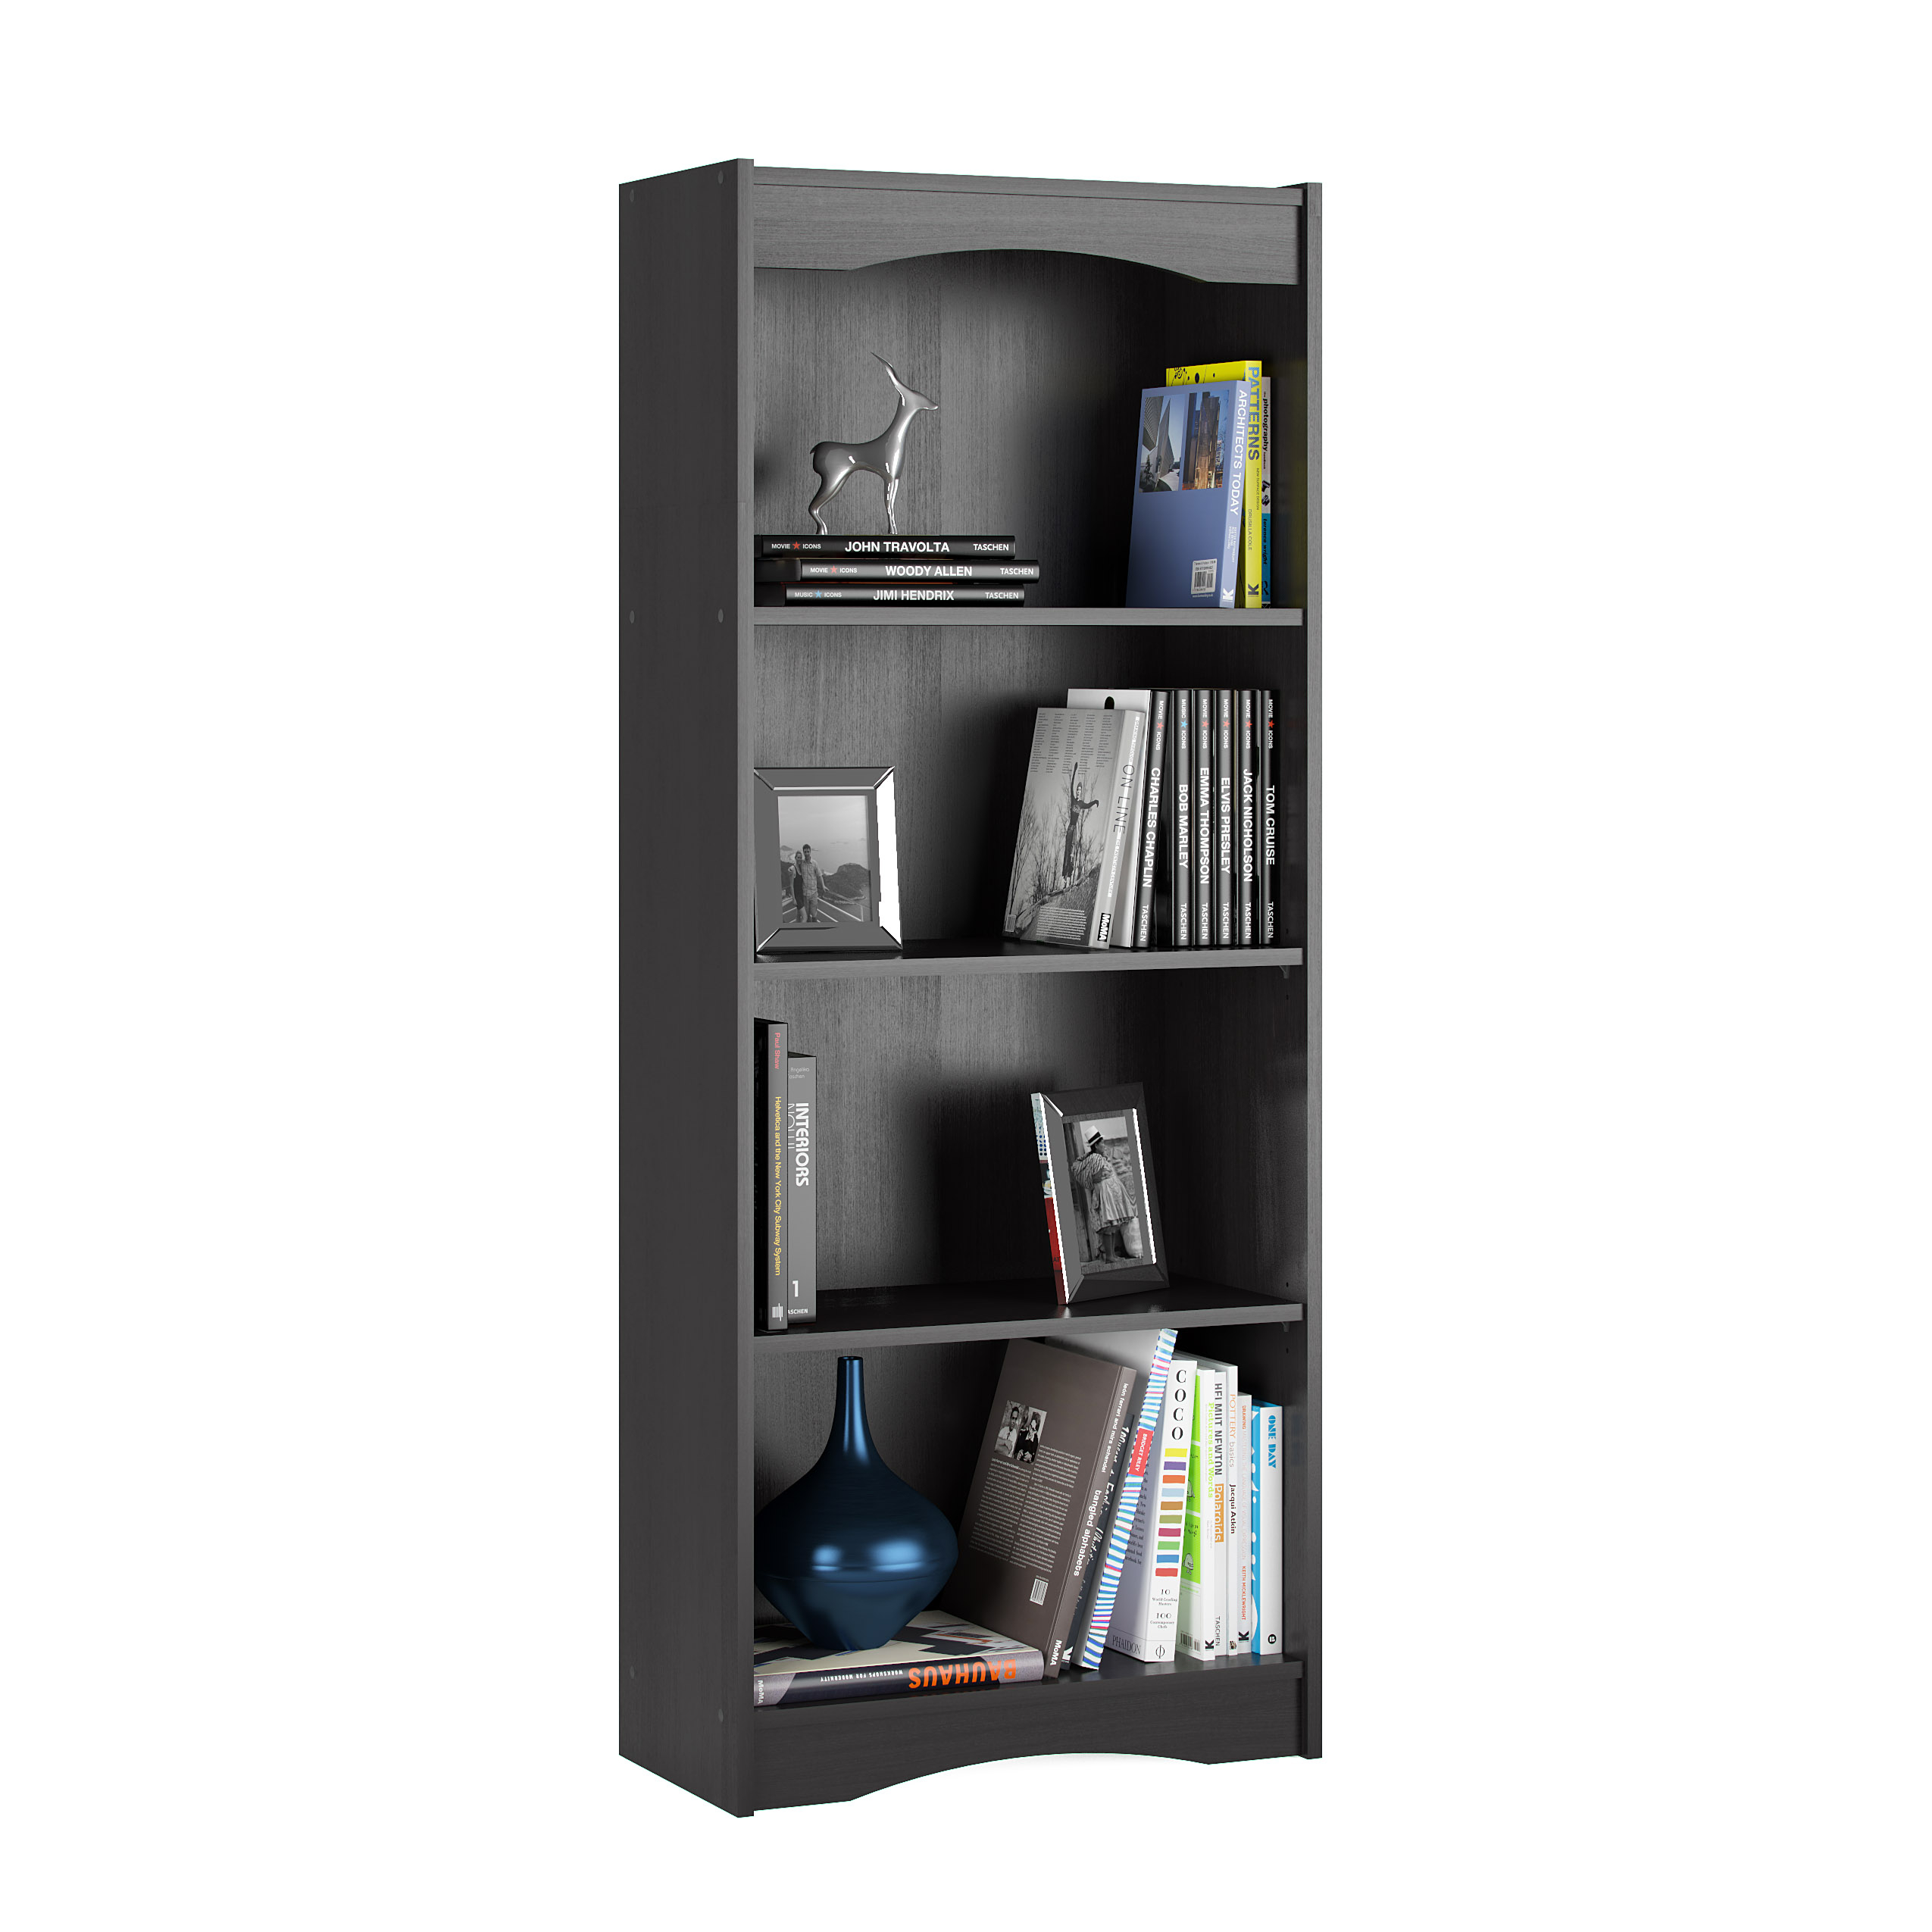 Hawthorn 60 Tall Adjustable Bookcase Walmart intended for sizing 2550 X 2550